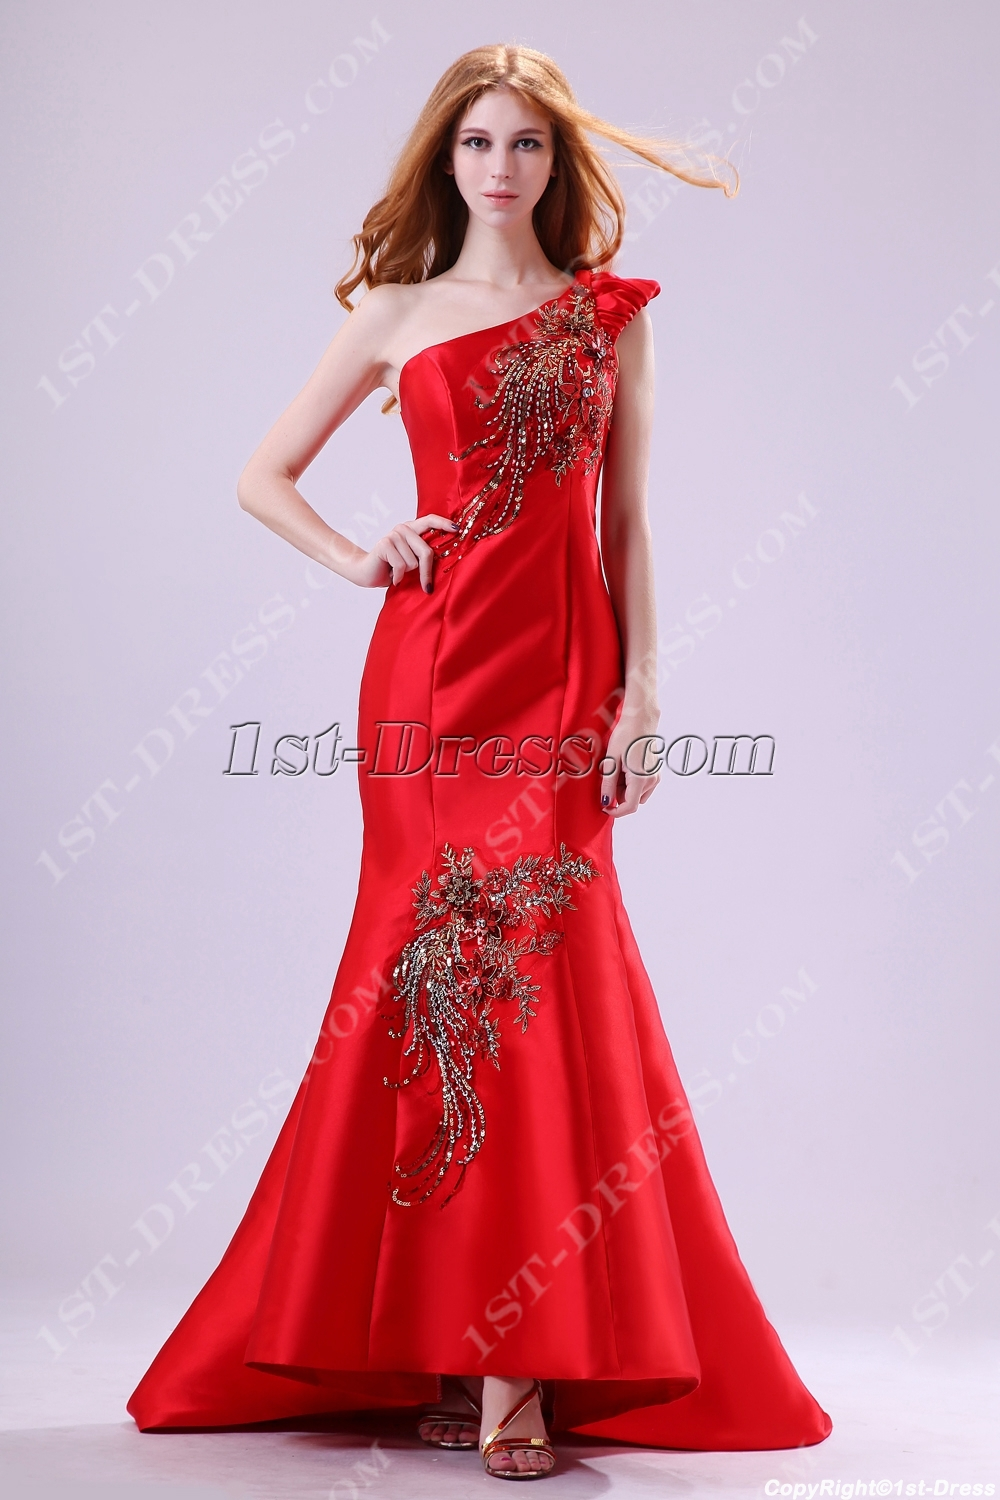 images/201311/big/Unique-Red-One-Shoulder-Mermaid-Evening-Dress-with-Train-3536-b-1-1384446369.jpg